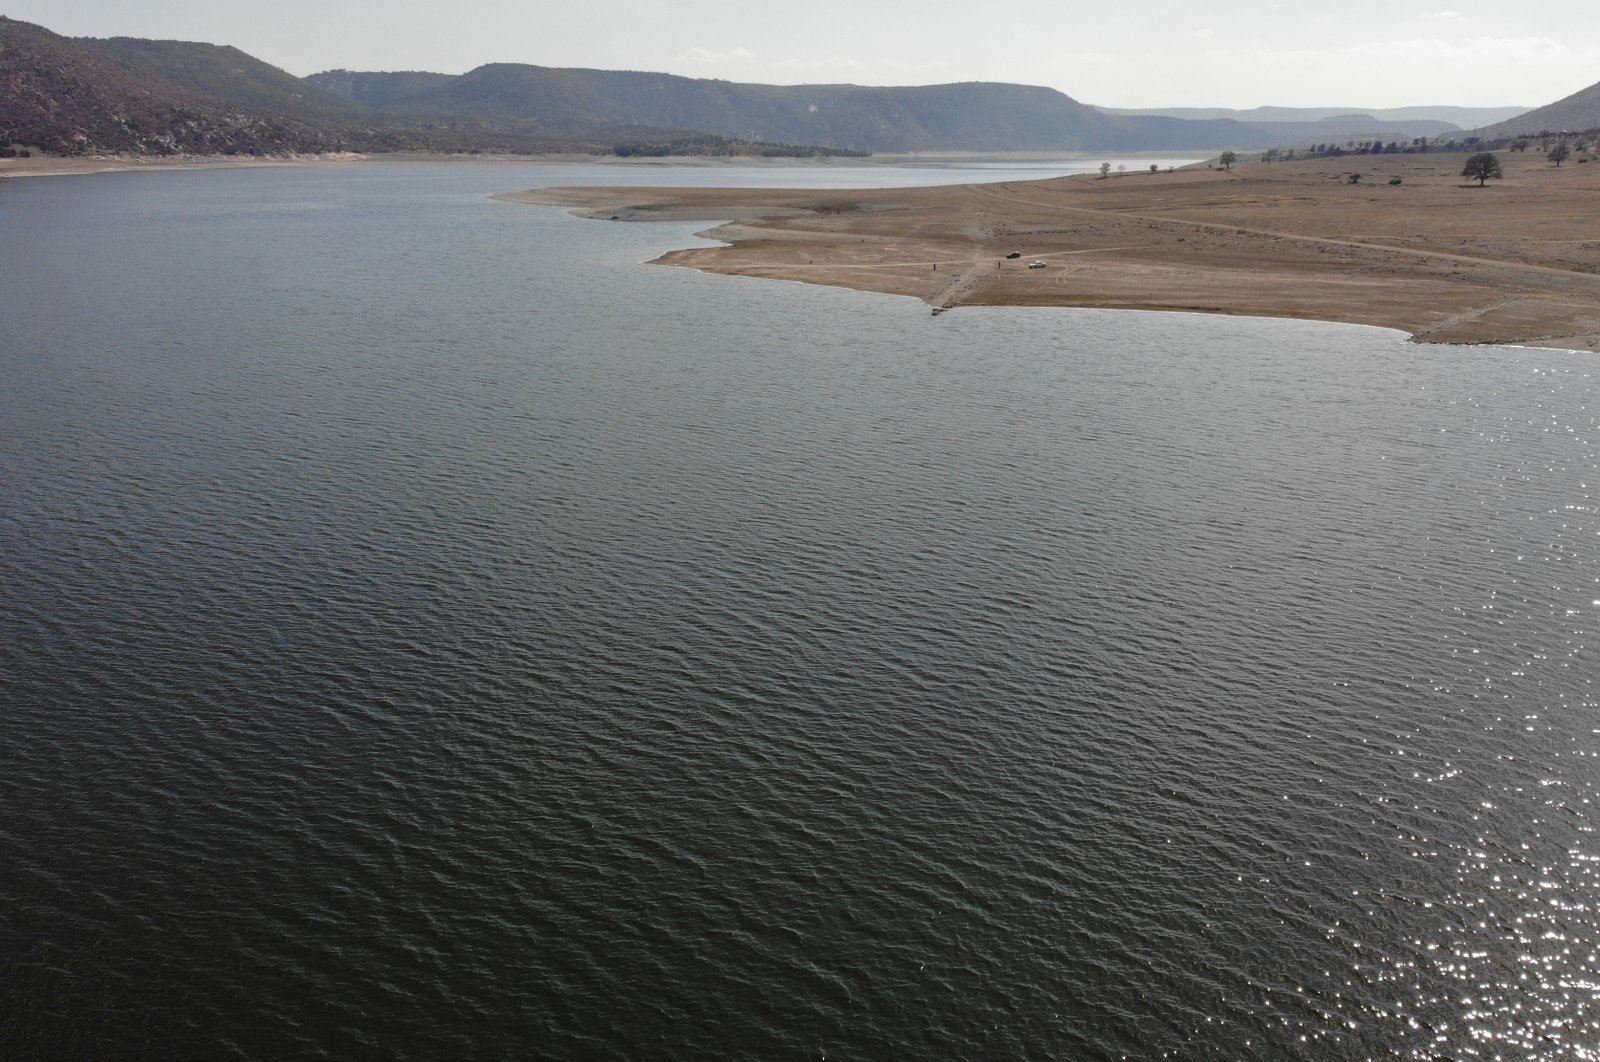 A view of Porsuk Dam where water levels rose after a long dry spell, in Kütahya, western Turkey, March 30, 2021. (IHA Photo)